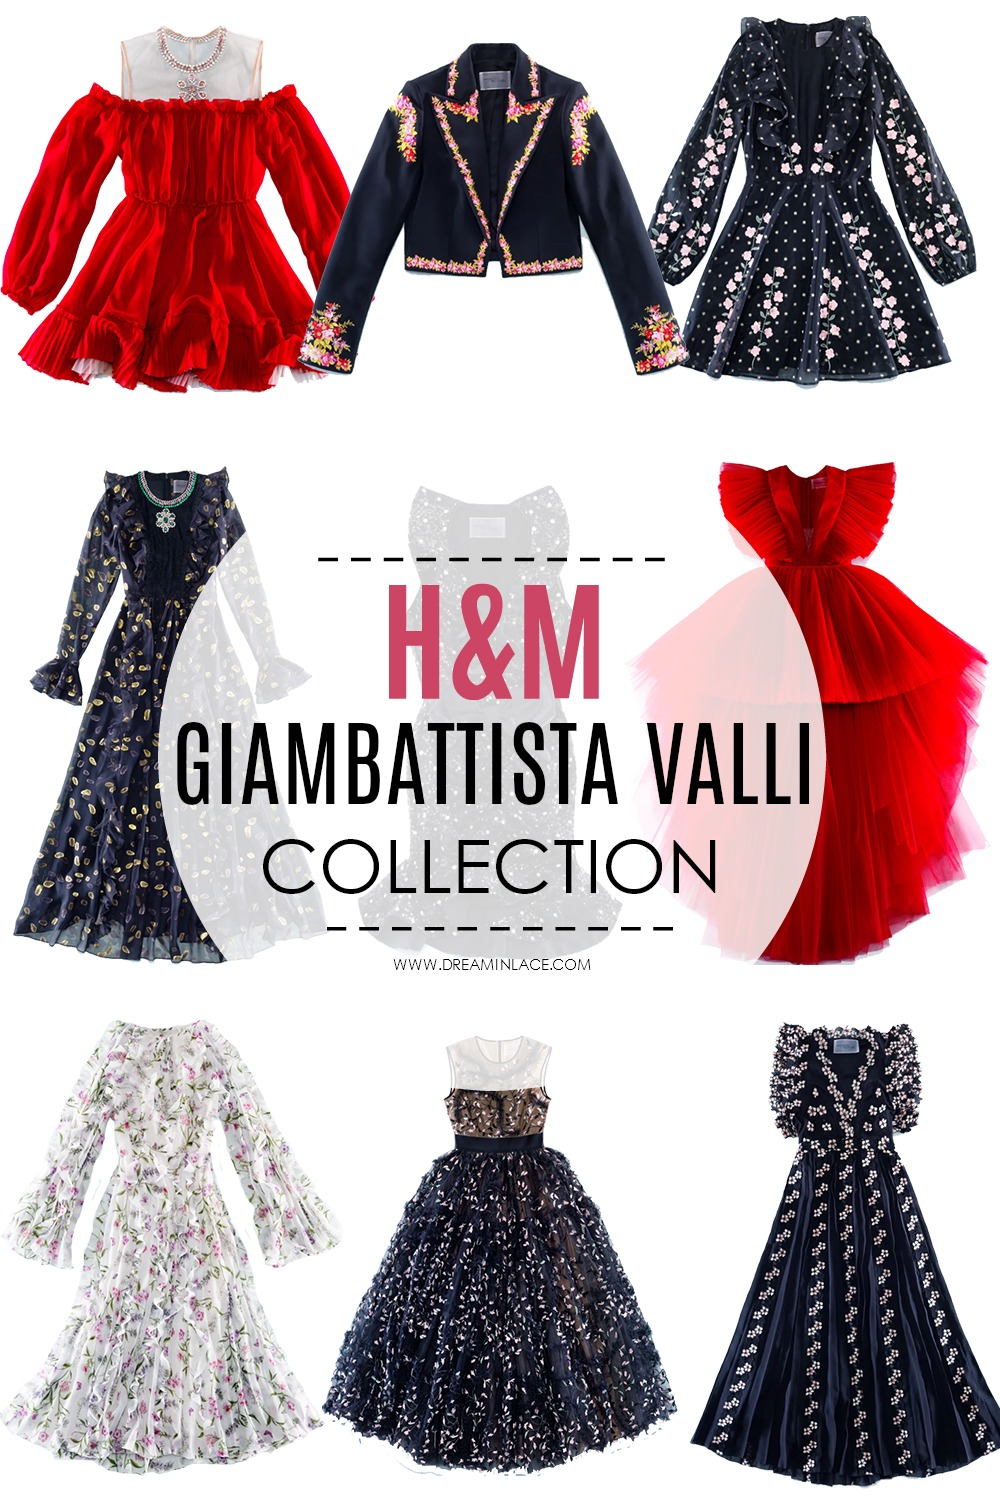 HM Giambattista Valli Collection I DreaminLace.com